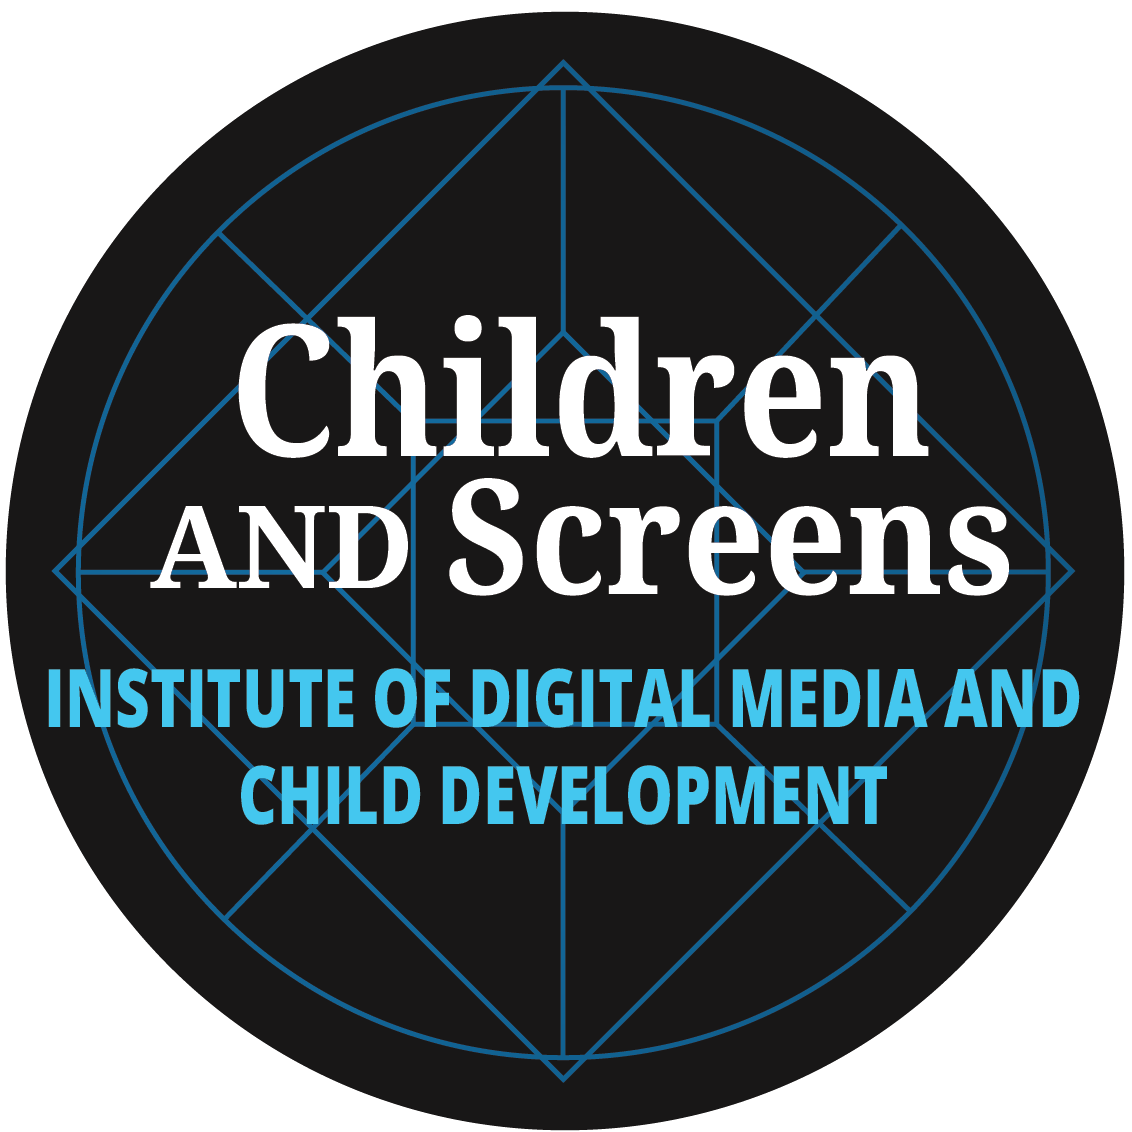 children and screens logo brightest 1